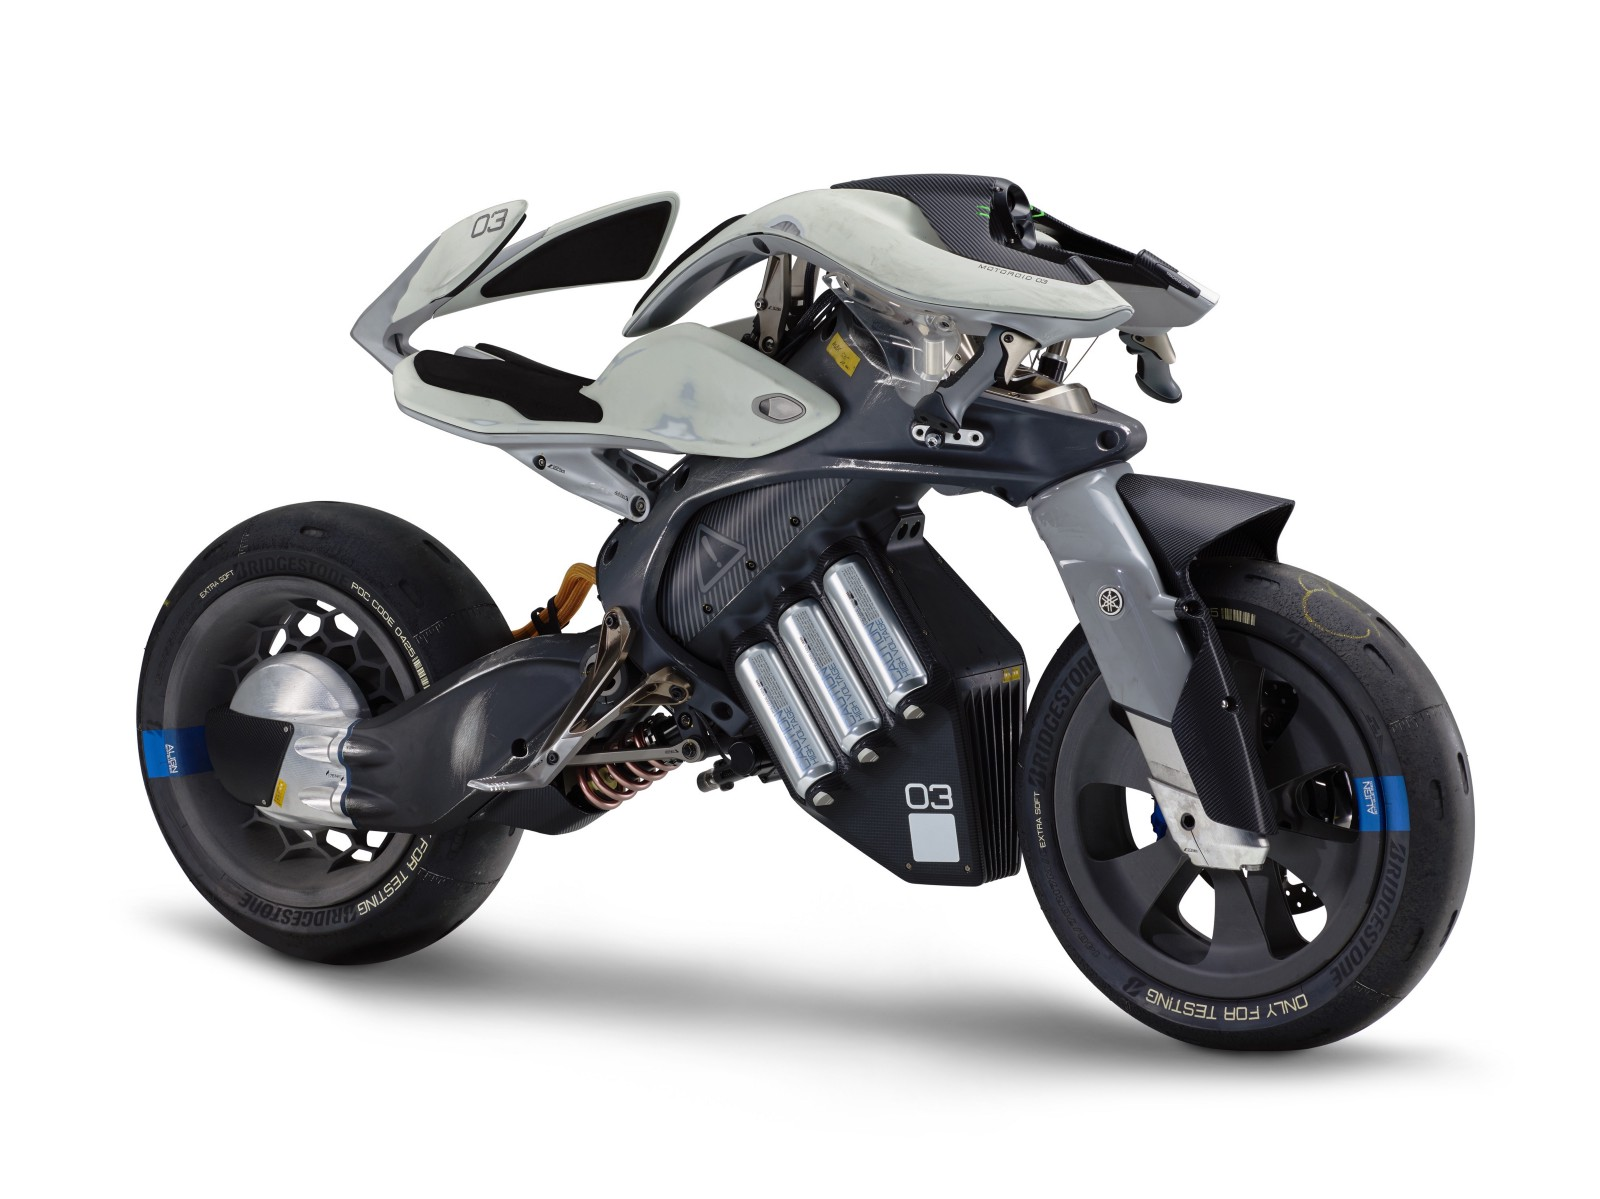 yamaha motorcycle pictures  Yamaha Sets the Pace for Self-Driving Motorcycles – SyncedReview ...